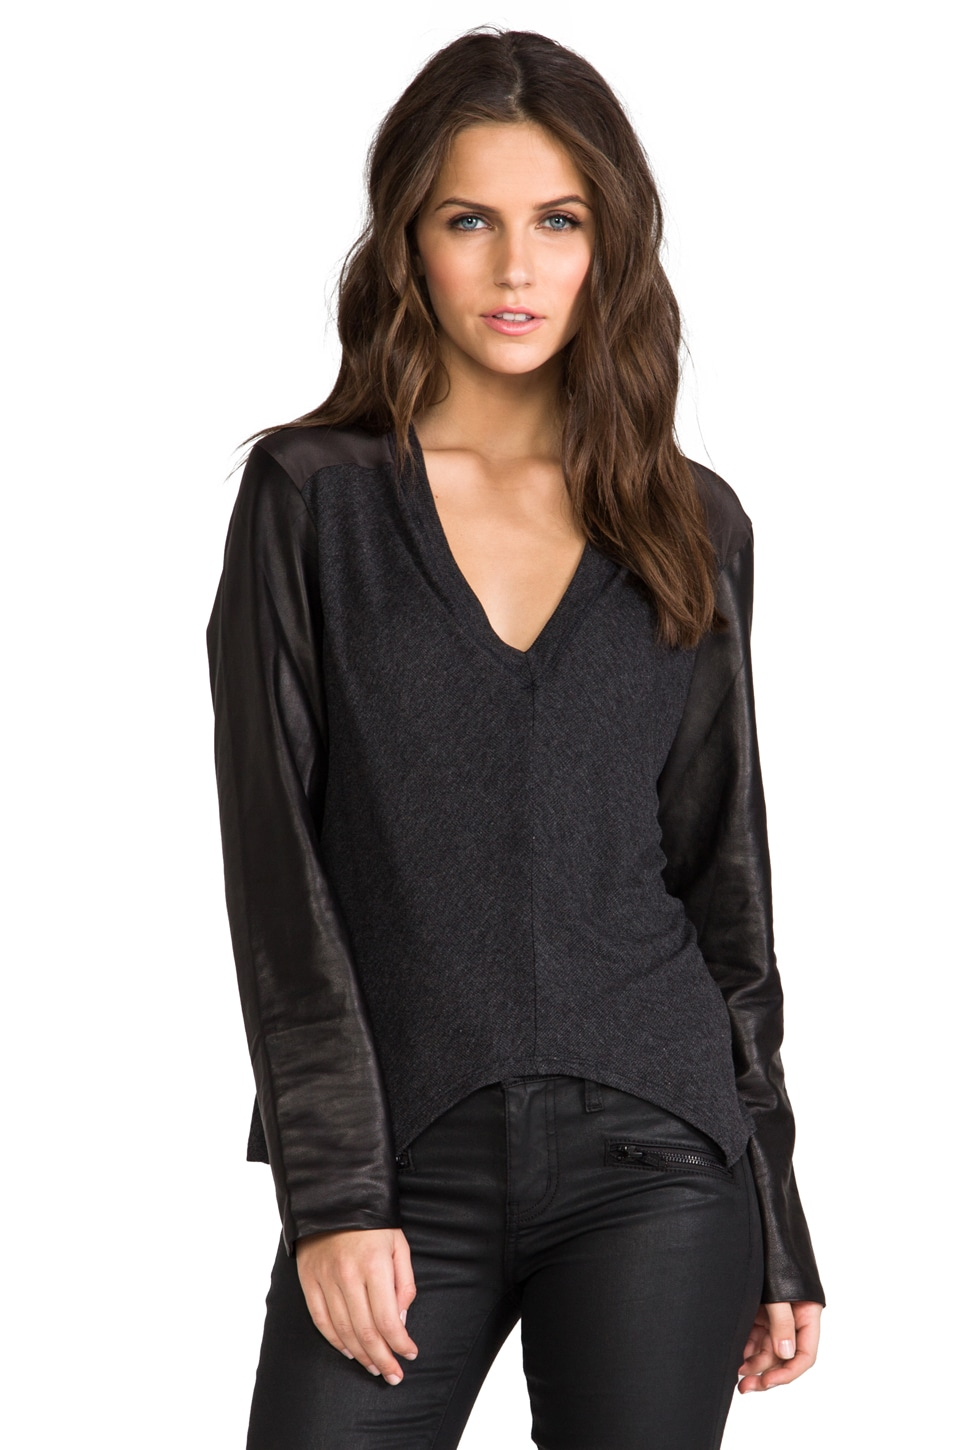 Heather Leather Sleeve Top in Heather Black